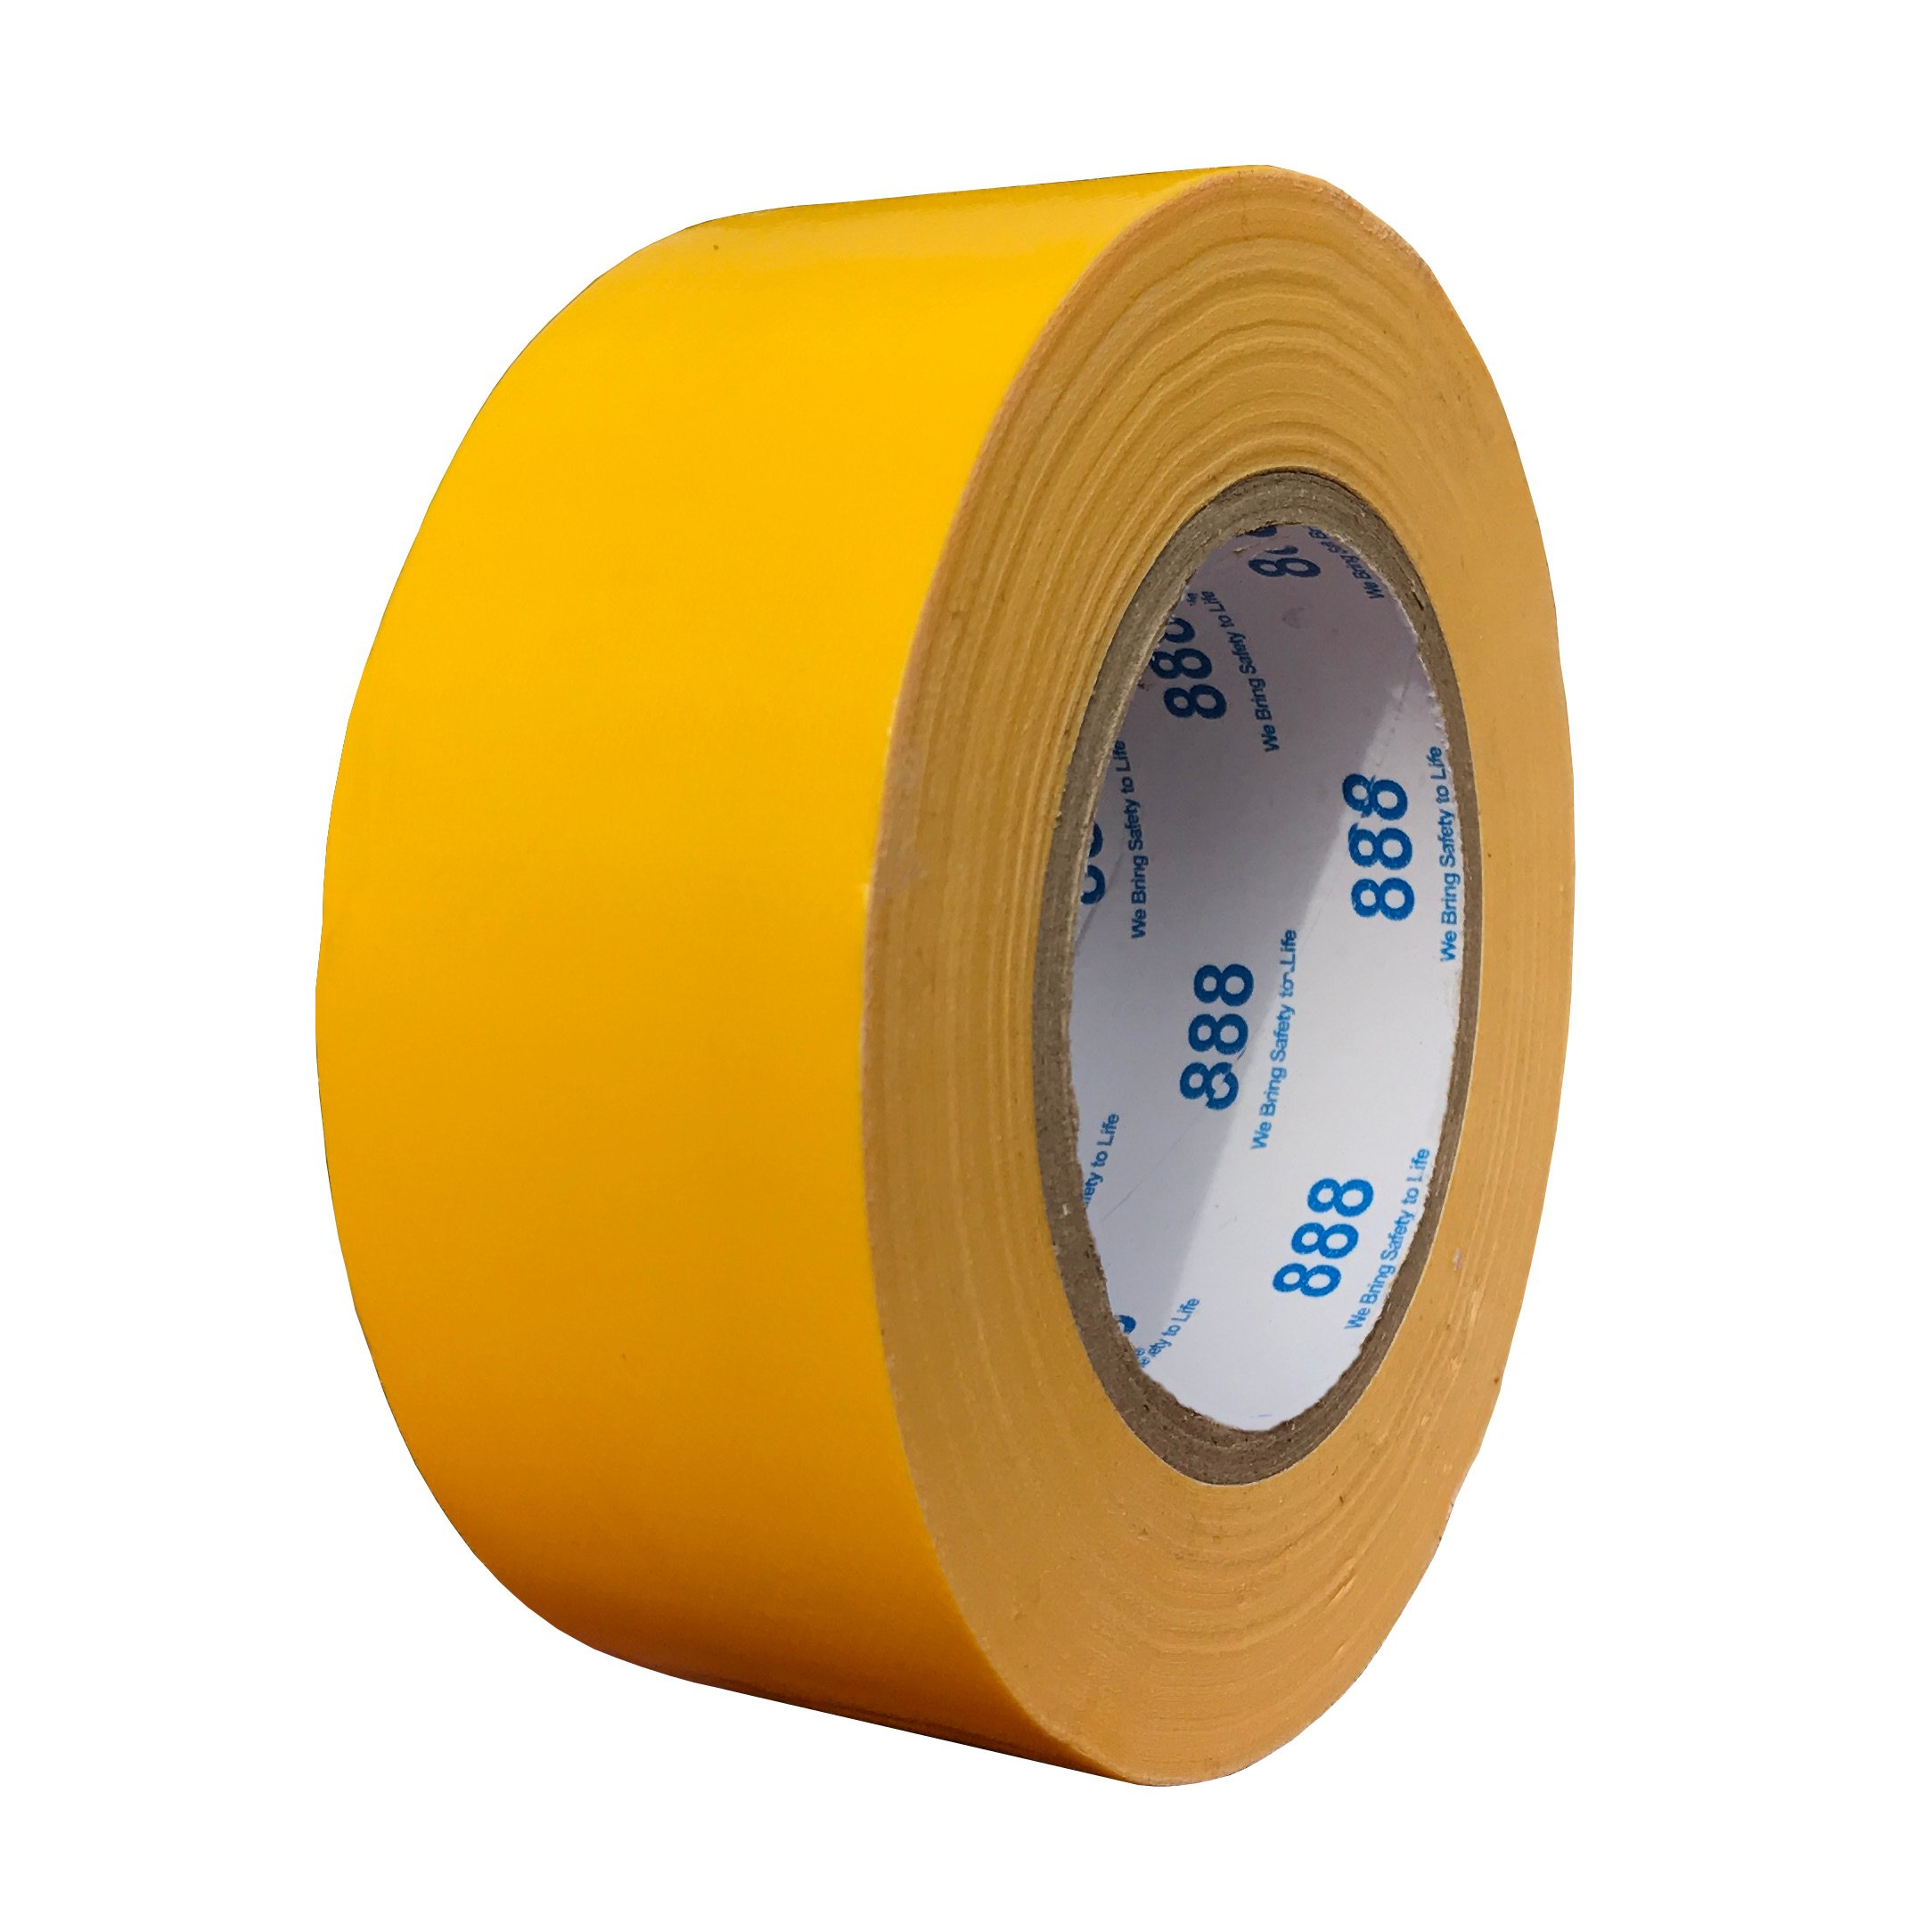 MG888 Yellow Colored Duct Tape 1.88 Inches x 60 Yards, Duct Tape for Crafts, DIY, Repairs, Indoor Outdoor Use